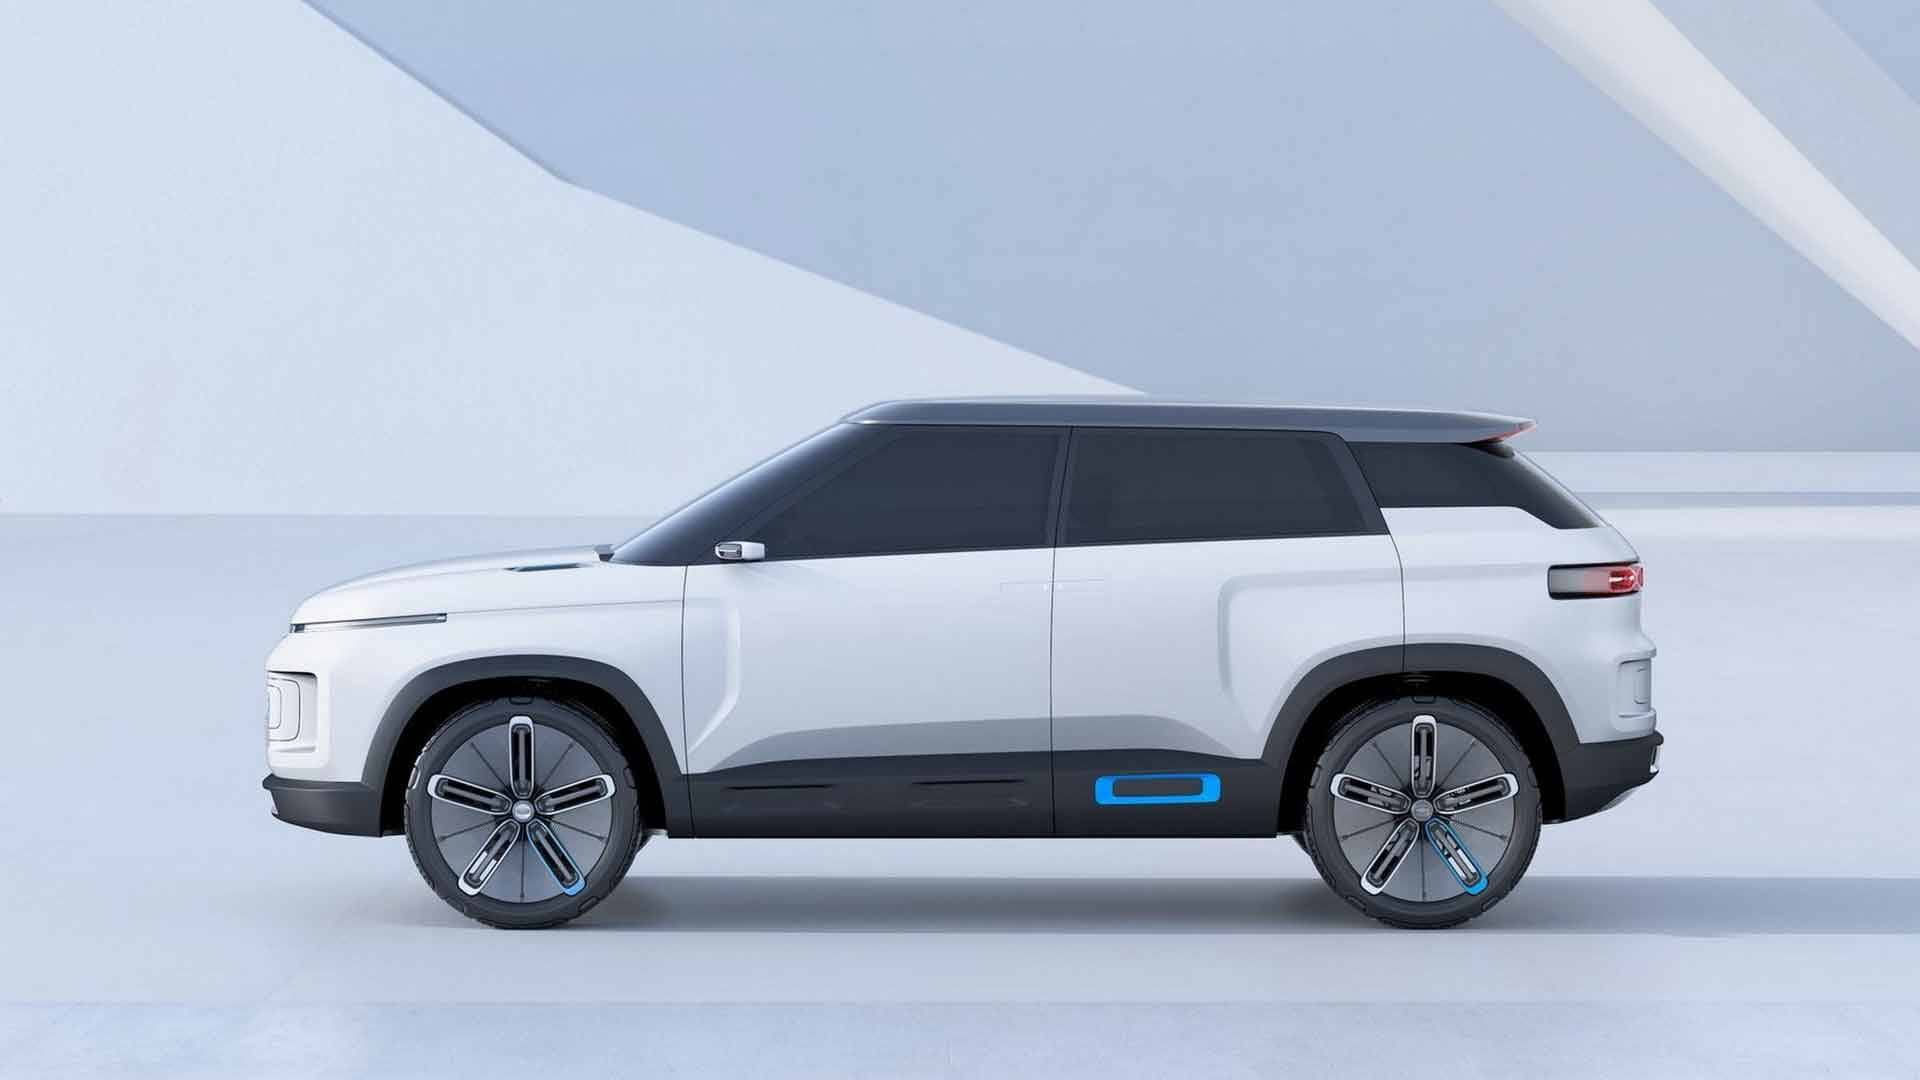 geely-concept-icon-suv (2)